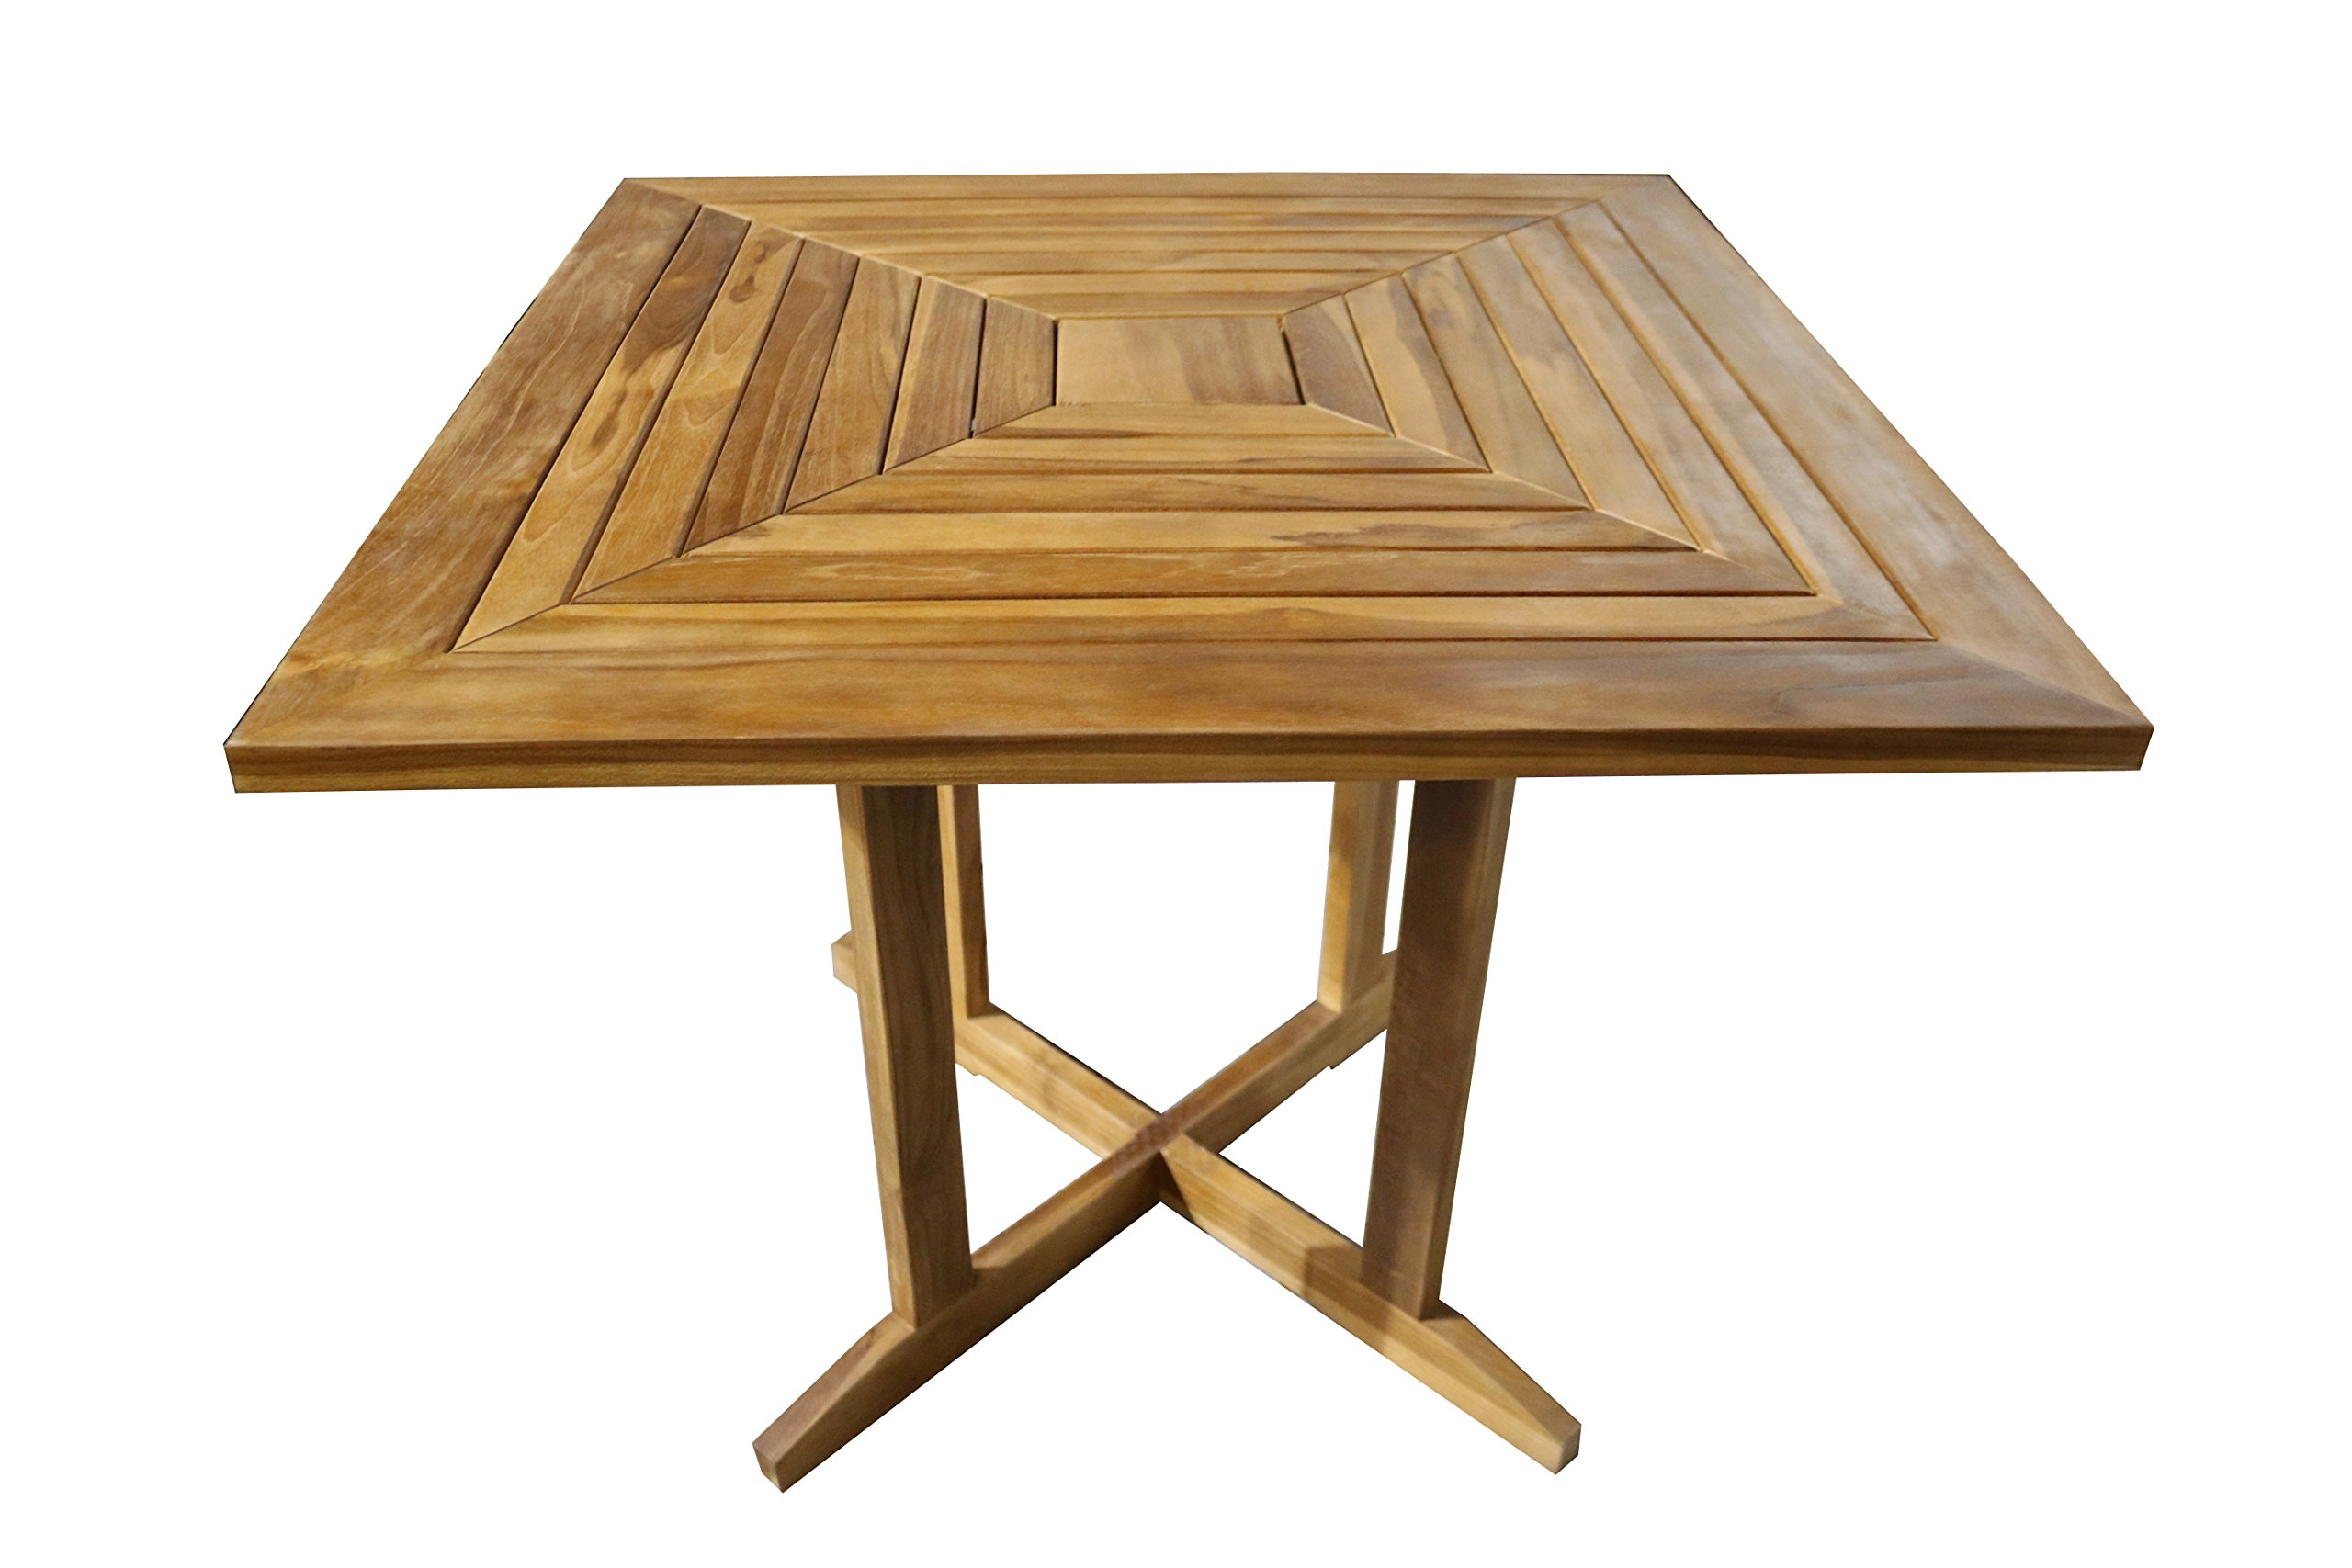 "ALATEAK Wood Patio Outside Indoor Outdoor Garden Yard Waterproof 35"" Table - 35 x 35 x 29 - Sustainably Harvested 100% Solid Teak Wood Geniune Teak Wood is naturaly mold and mildew resistant Naturally Water Resistant & Durable (Indoor or Outdoor Use) - patio-tables, patio-furniture, patio - 81dl9BERxfL -"